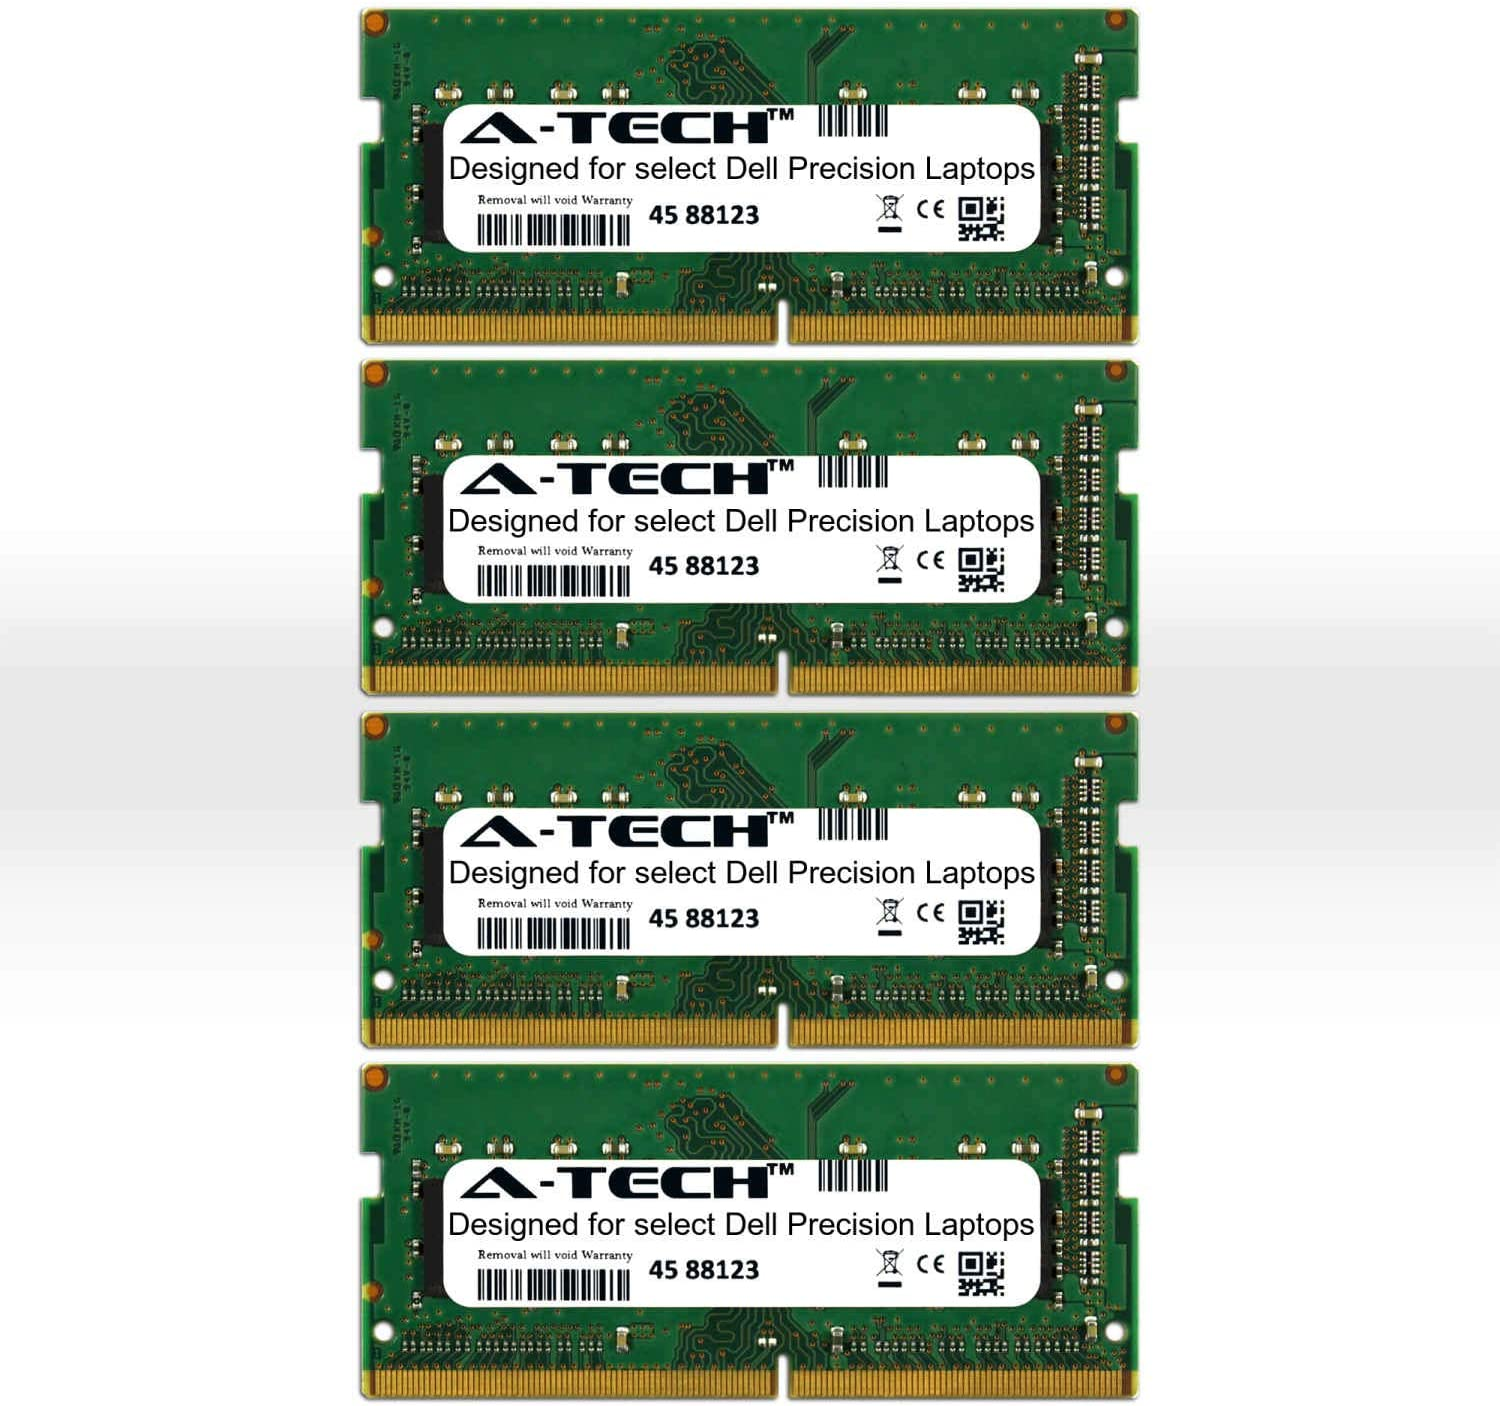 A-Tech 64GB Kit (4 x 16GB) for Dell Precision 7000 Series 7510 7520 7710 7720 7530 7730 M7510 M7520 M7710 M7720 M7530 M7730 2666Mhz DDR4 Mobile Workstation Laptop & Notebook Memory Ram Modules